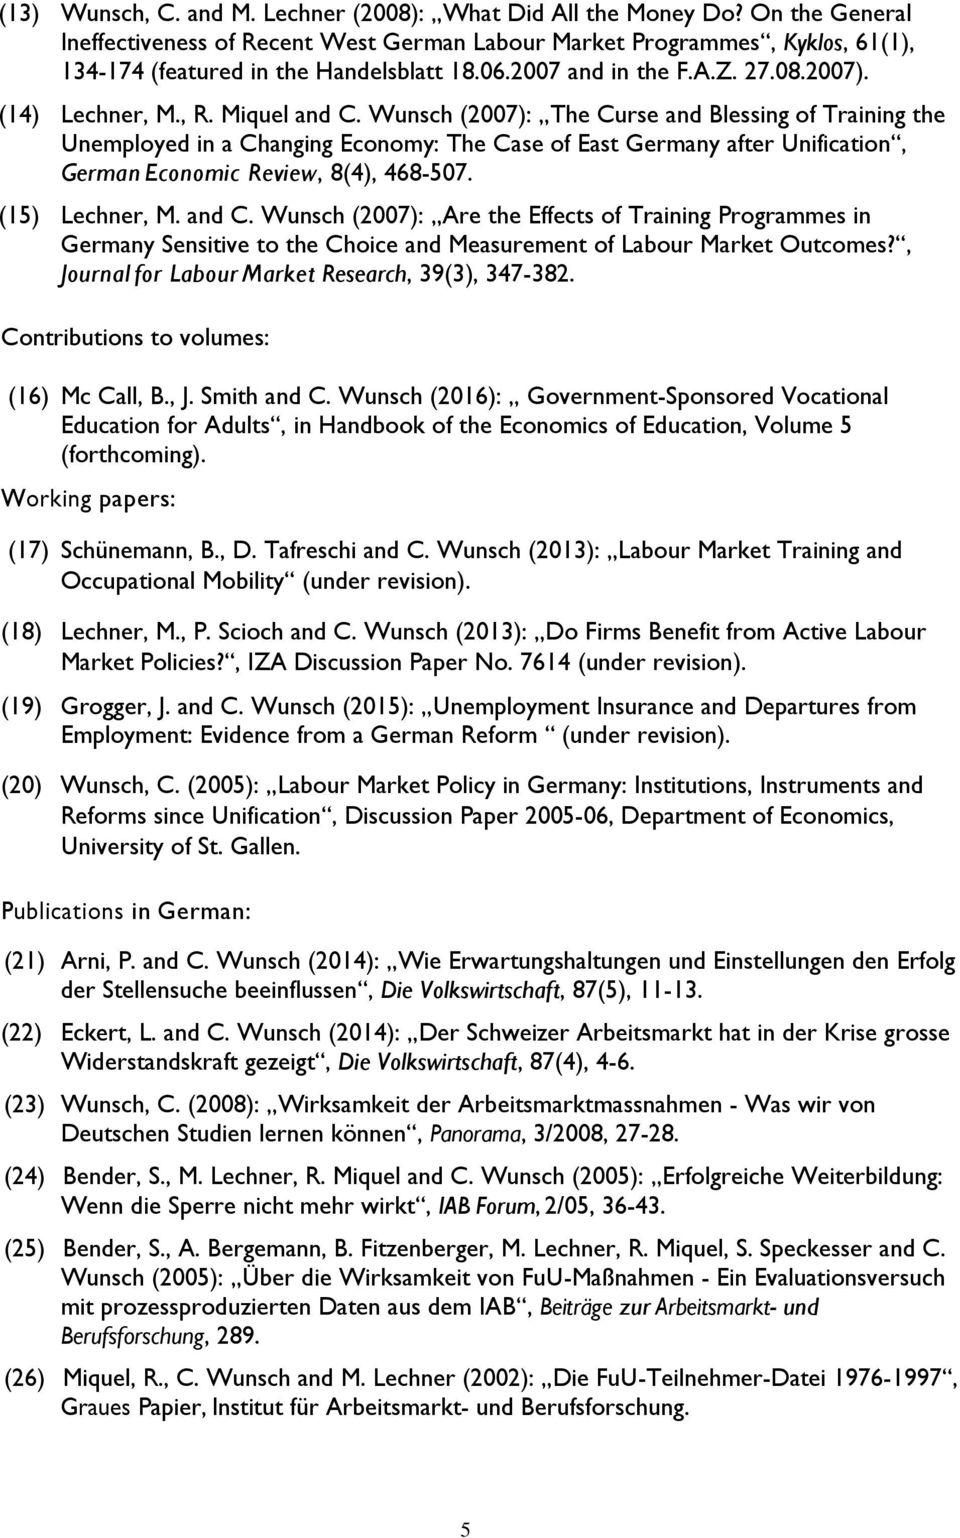 Miquel and C. Wunsch (2007): The Curse and Blessing of Training the Unemployed in a Changing Economy: The Case of East Germany after Unification, German Economic Review, 8(4), 468-507.